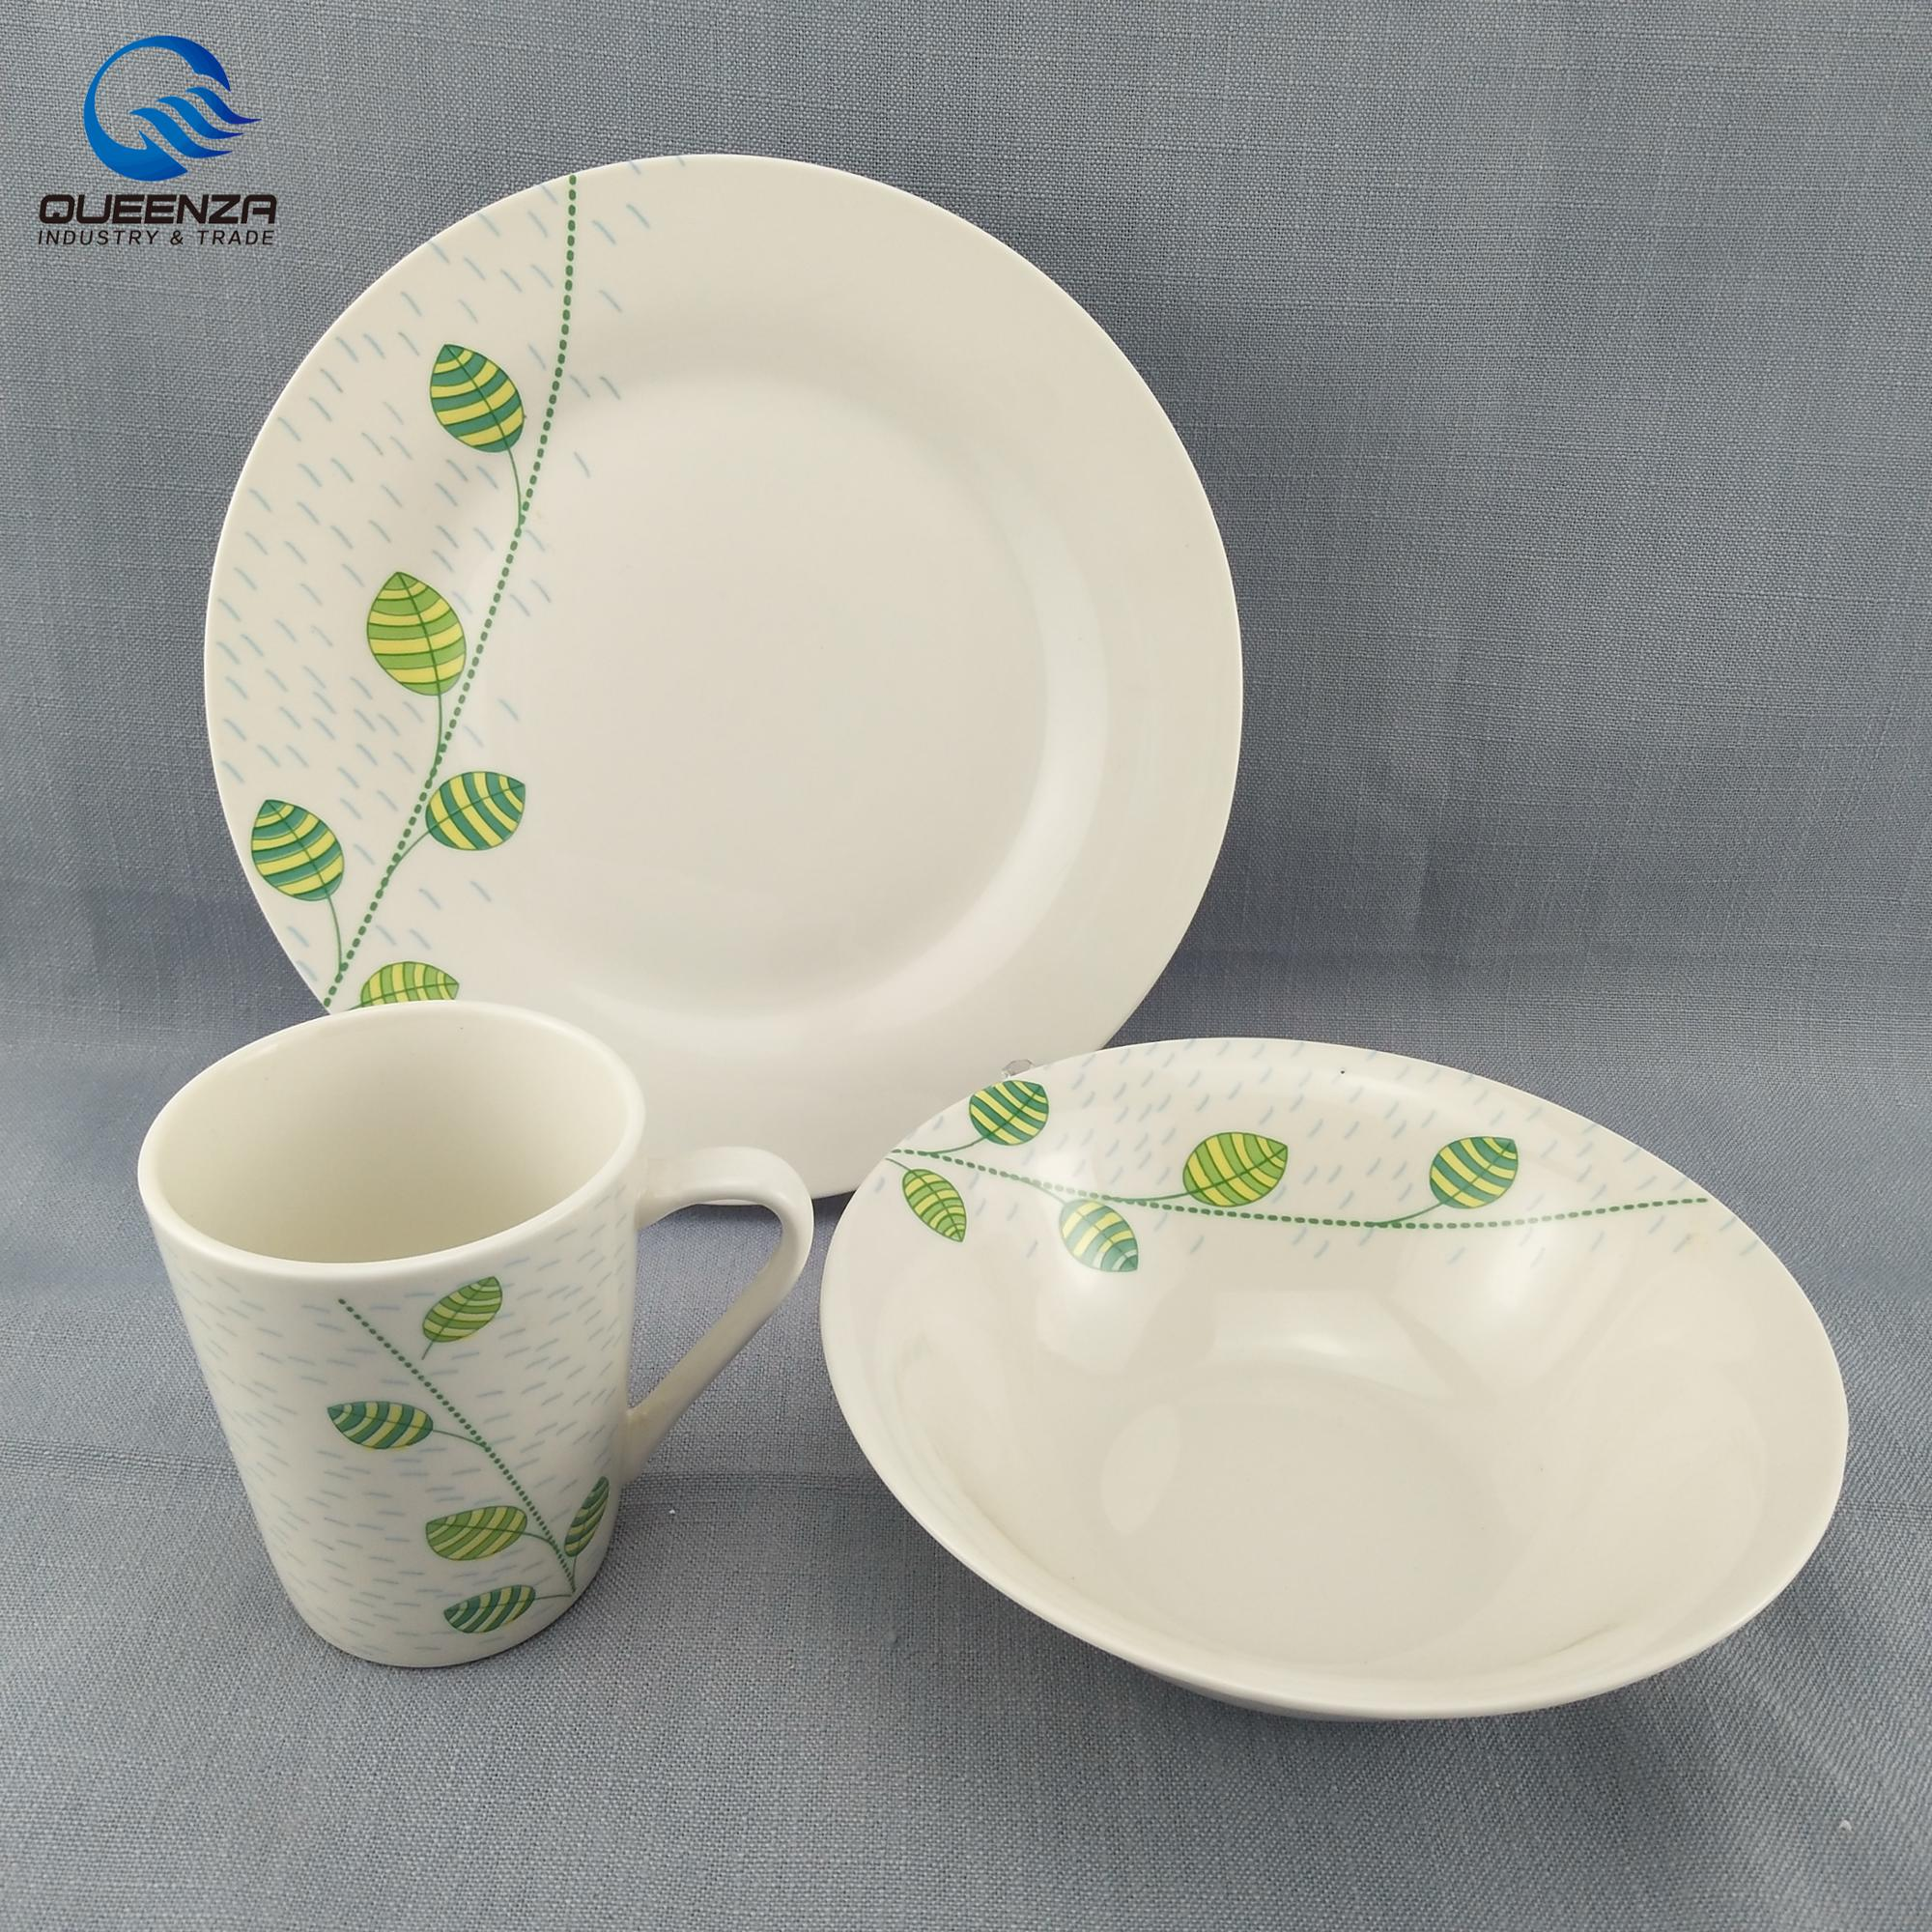 Porcelain Children\u0027s Dinnerware Set Porcelain Children\u0027s Dinnerware Set Suppliers and Manufacturers at Alibaba.com & Porcelain Children\u0027s Dinnerware Set Porcelain Children\u0027s ...